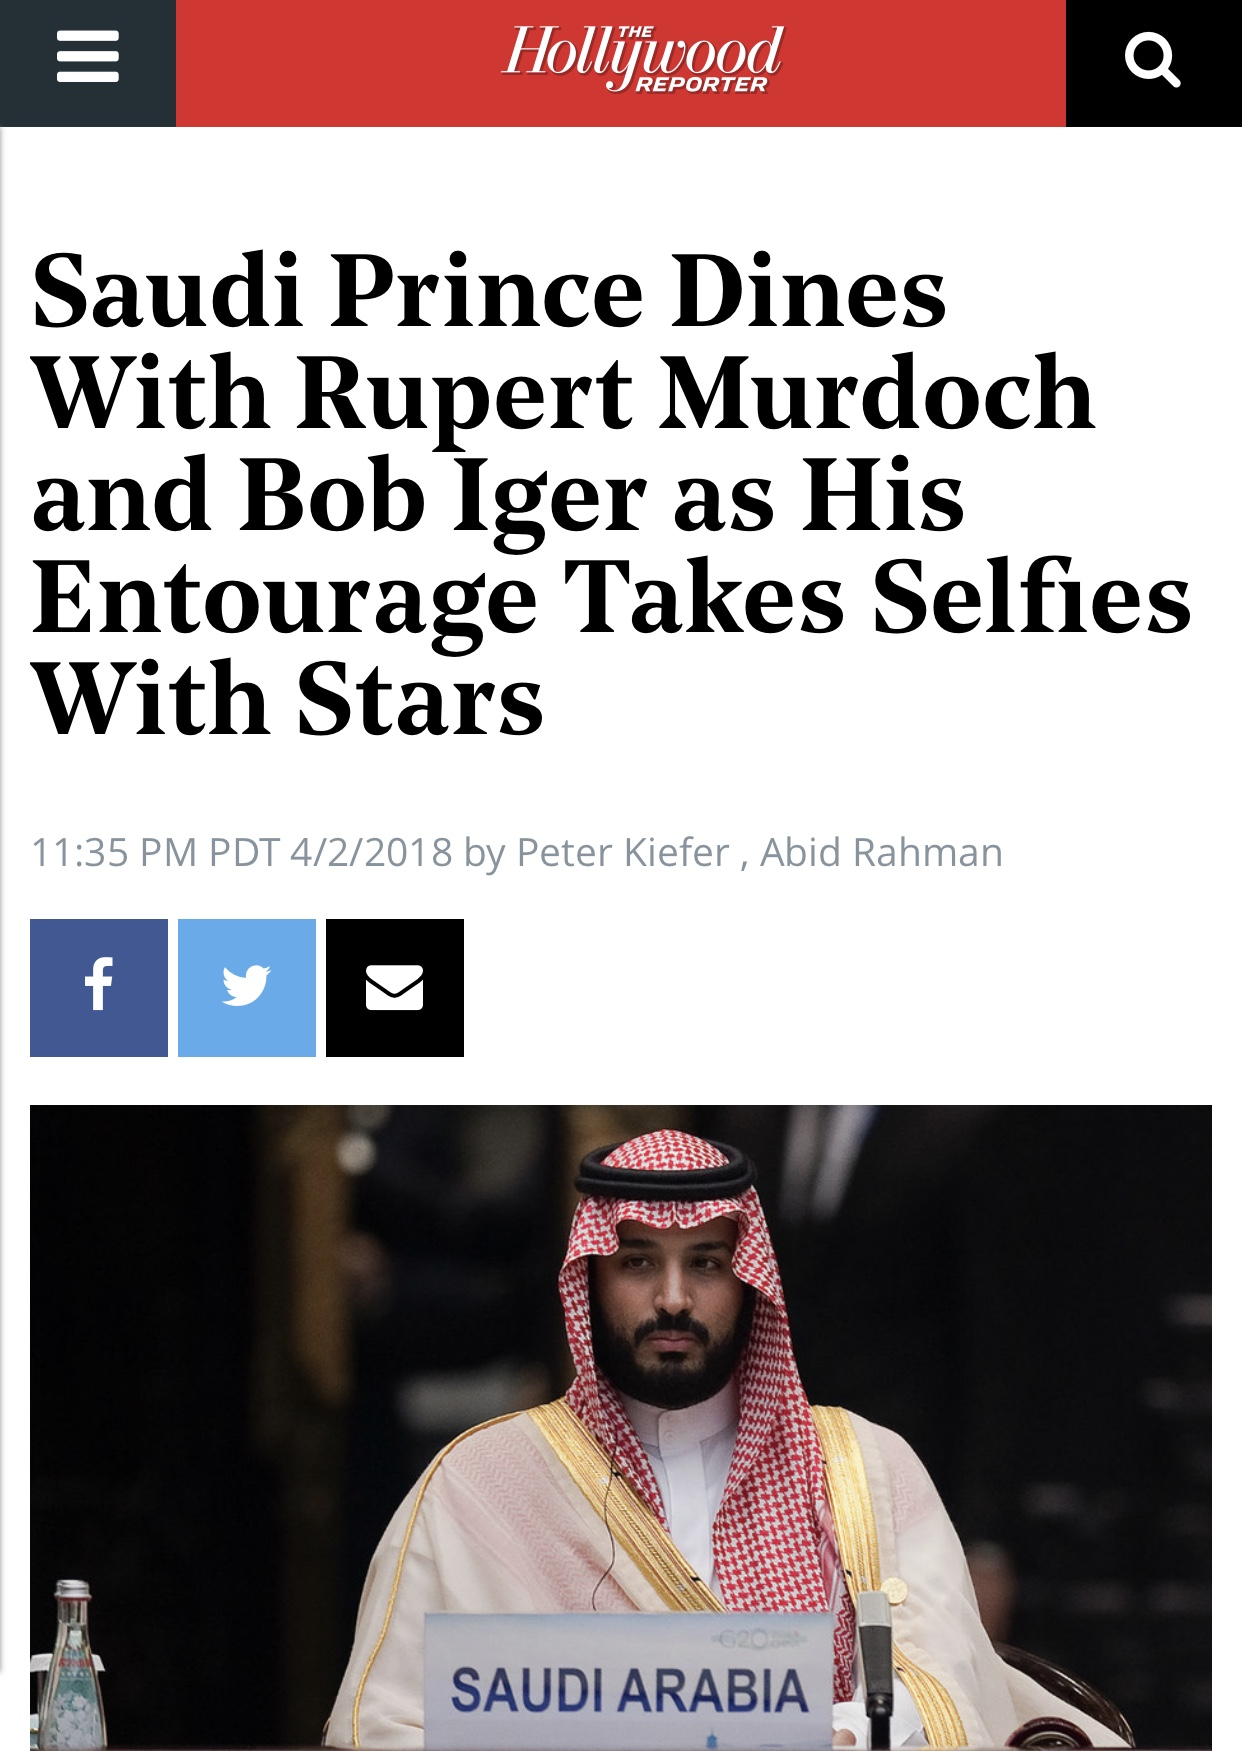 Saudi Prince Dines With Rupert Murdoch | Hollywood Reporter